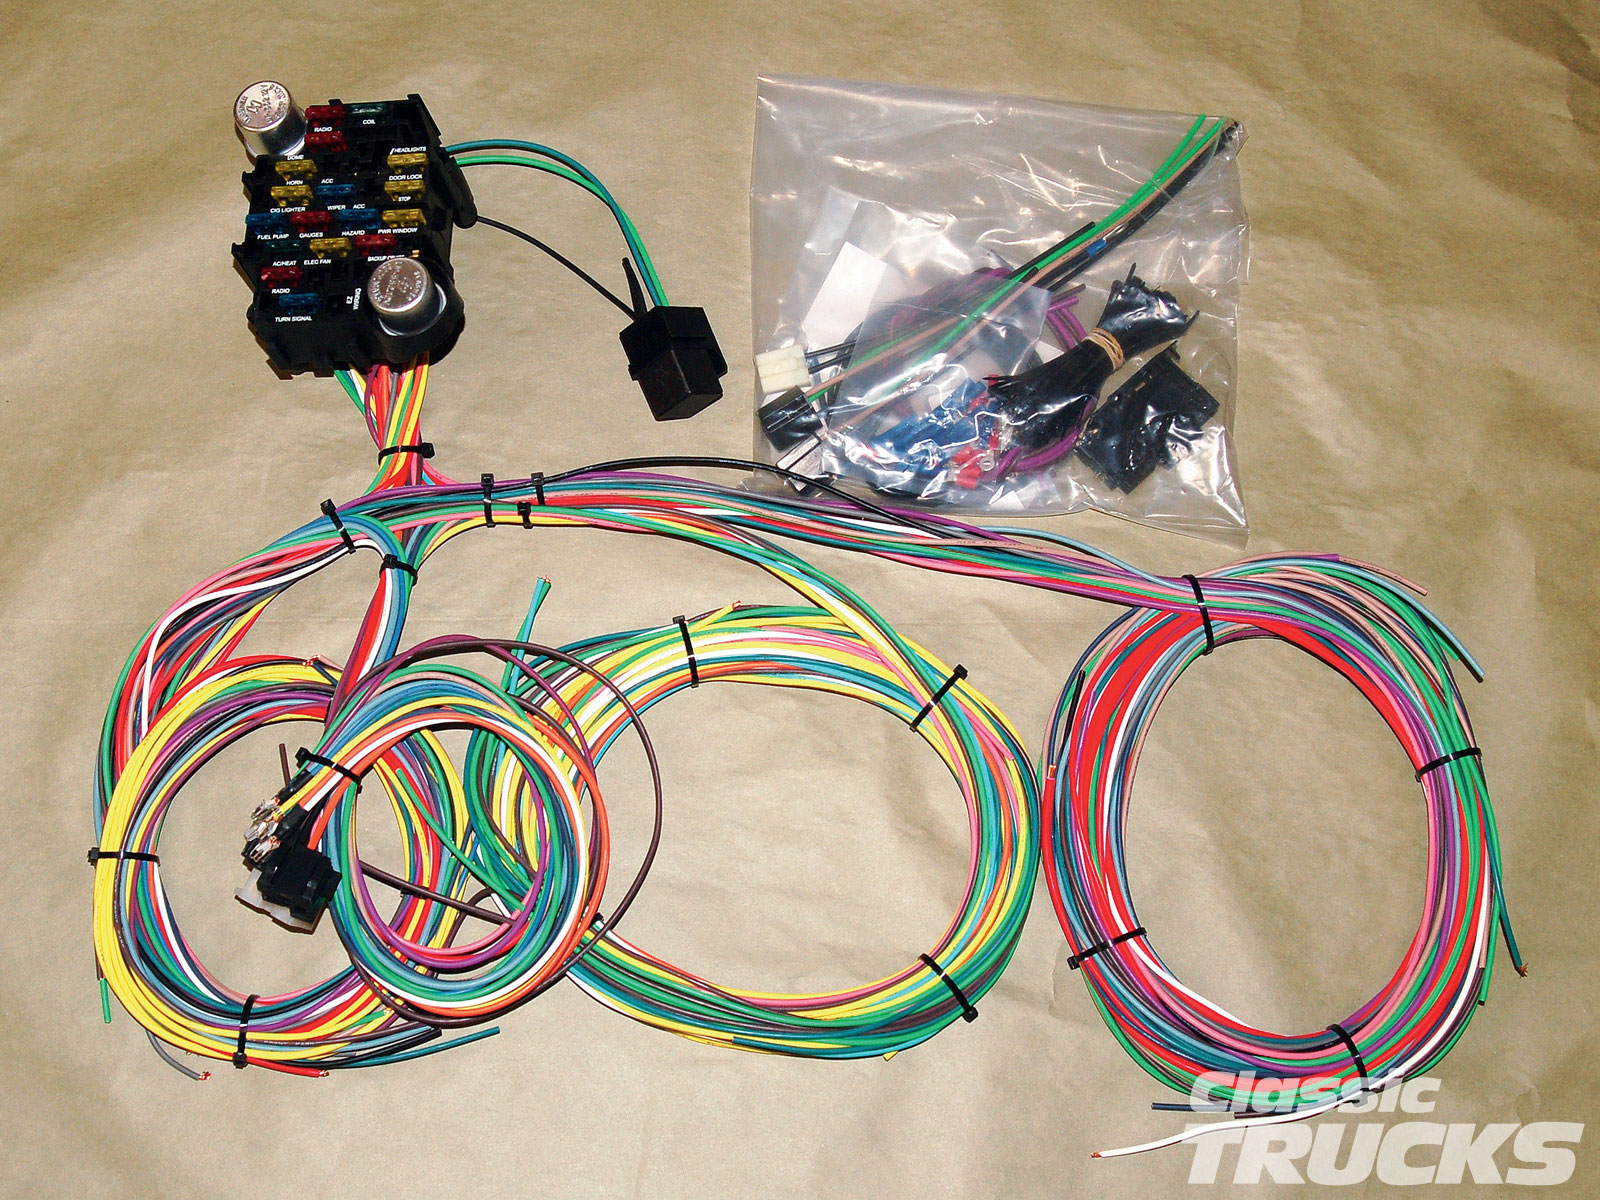 1010clt 02 o aftermarket wiring harness install kit?resize=640%2C480 how much does a wire harness cost to replace hobbiesxstyle how much does it cost to replace a wiring harness at aneh.co